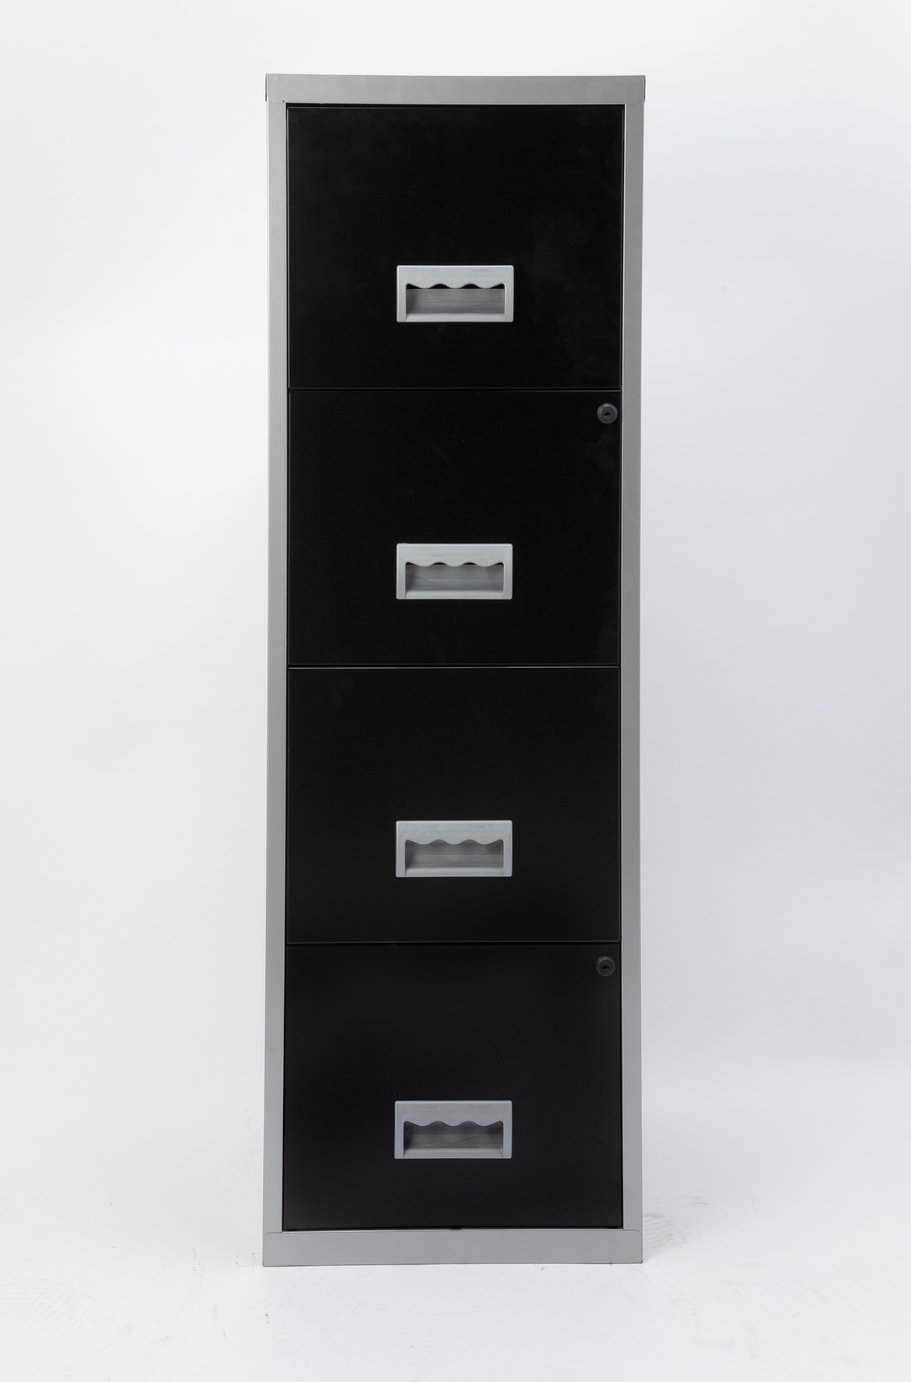 buy 4 drawer a4 metal filing cabinet filing cabinets and office storage rh argos co uk 4 drawer metal filing cabinet price 4 drawer metal file cabinet walmart